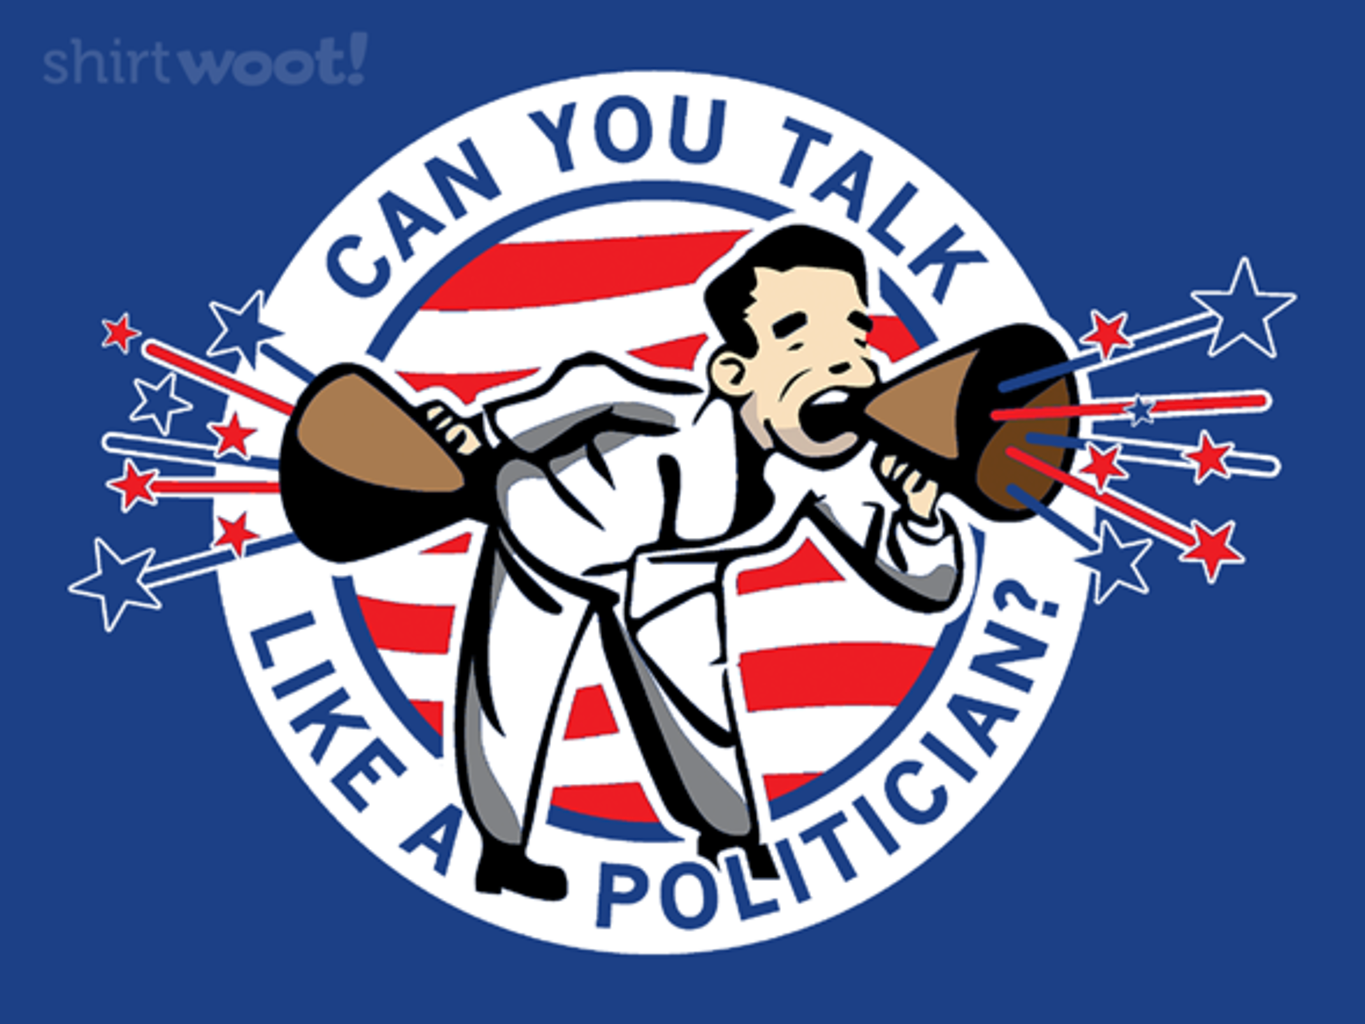 Woot!: Like a Politician